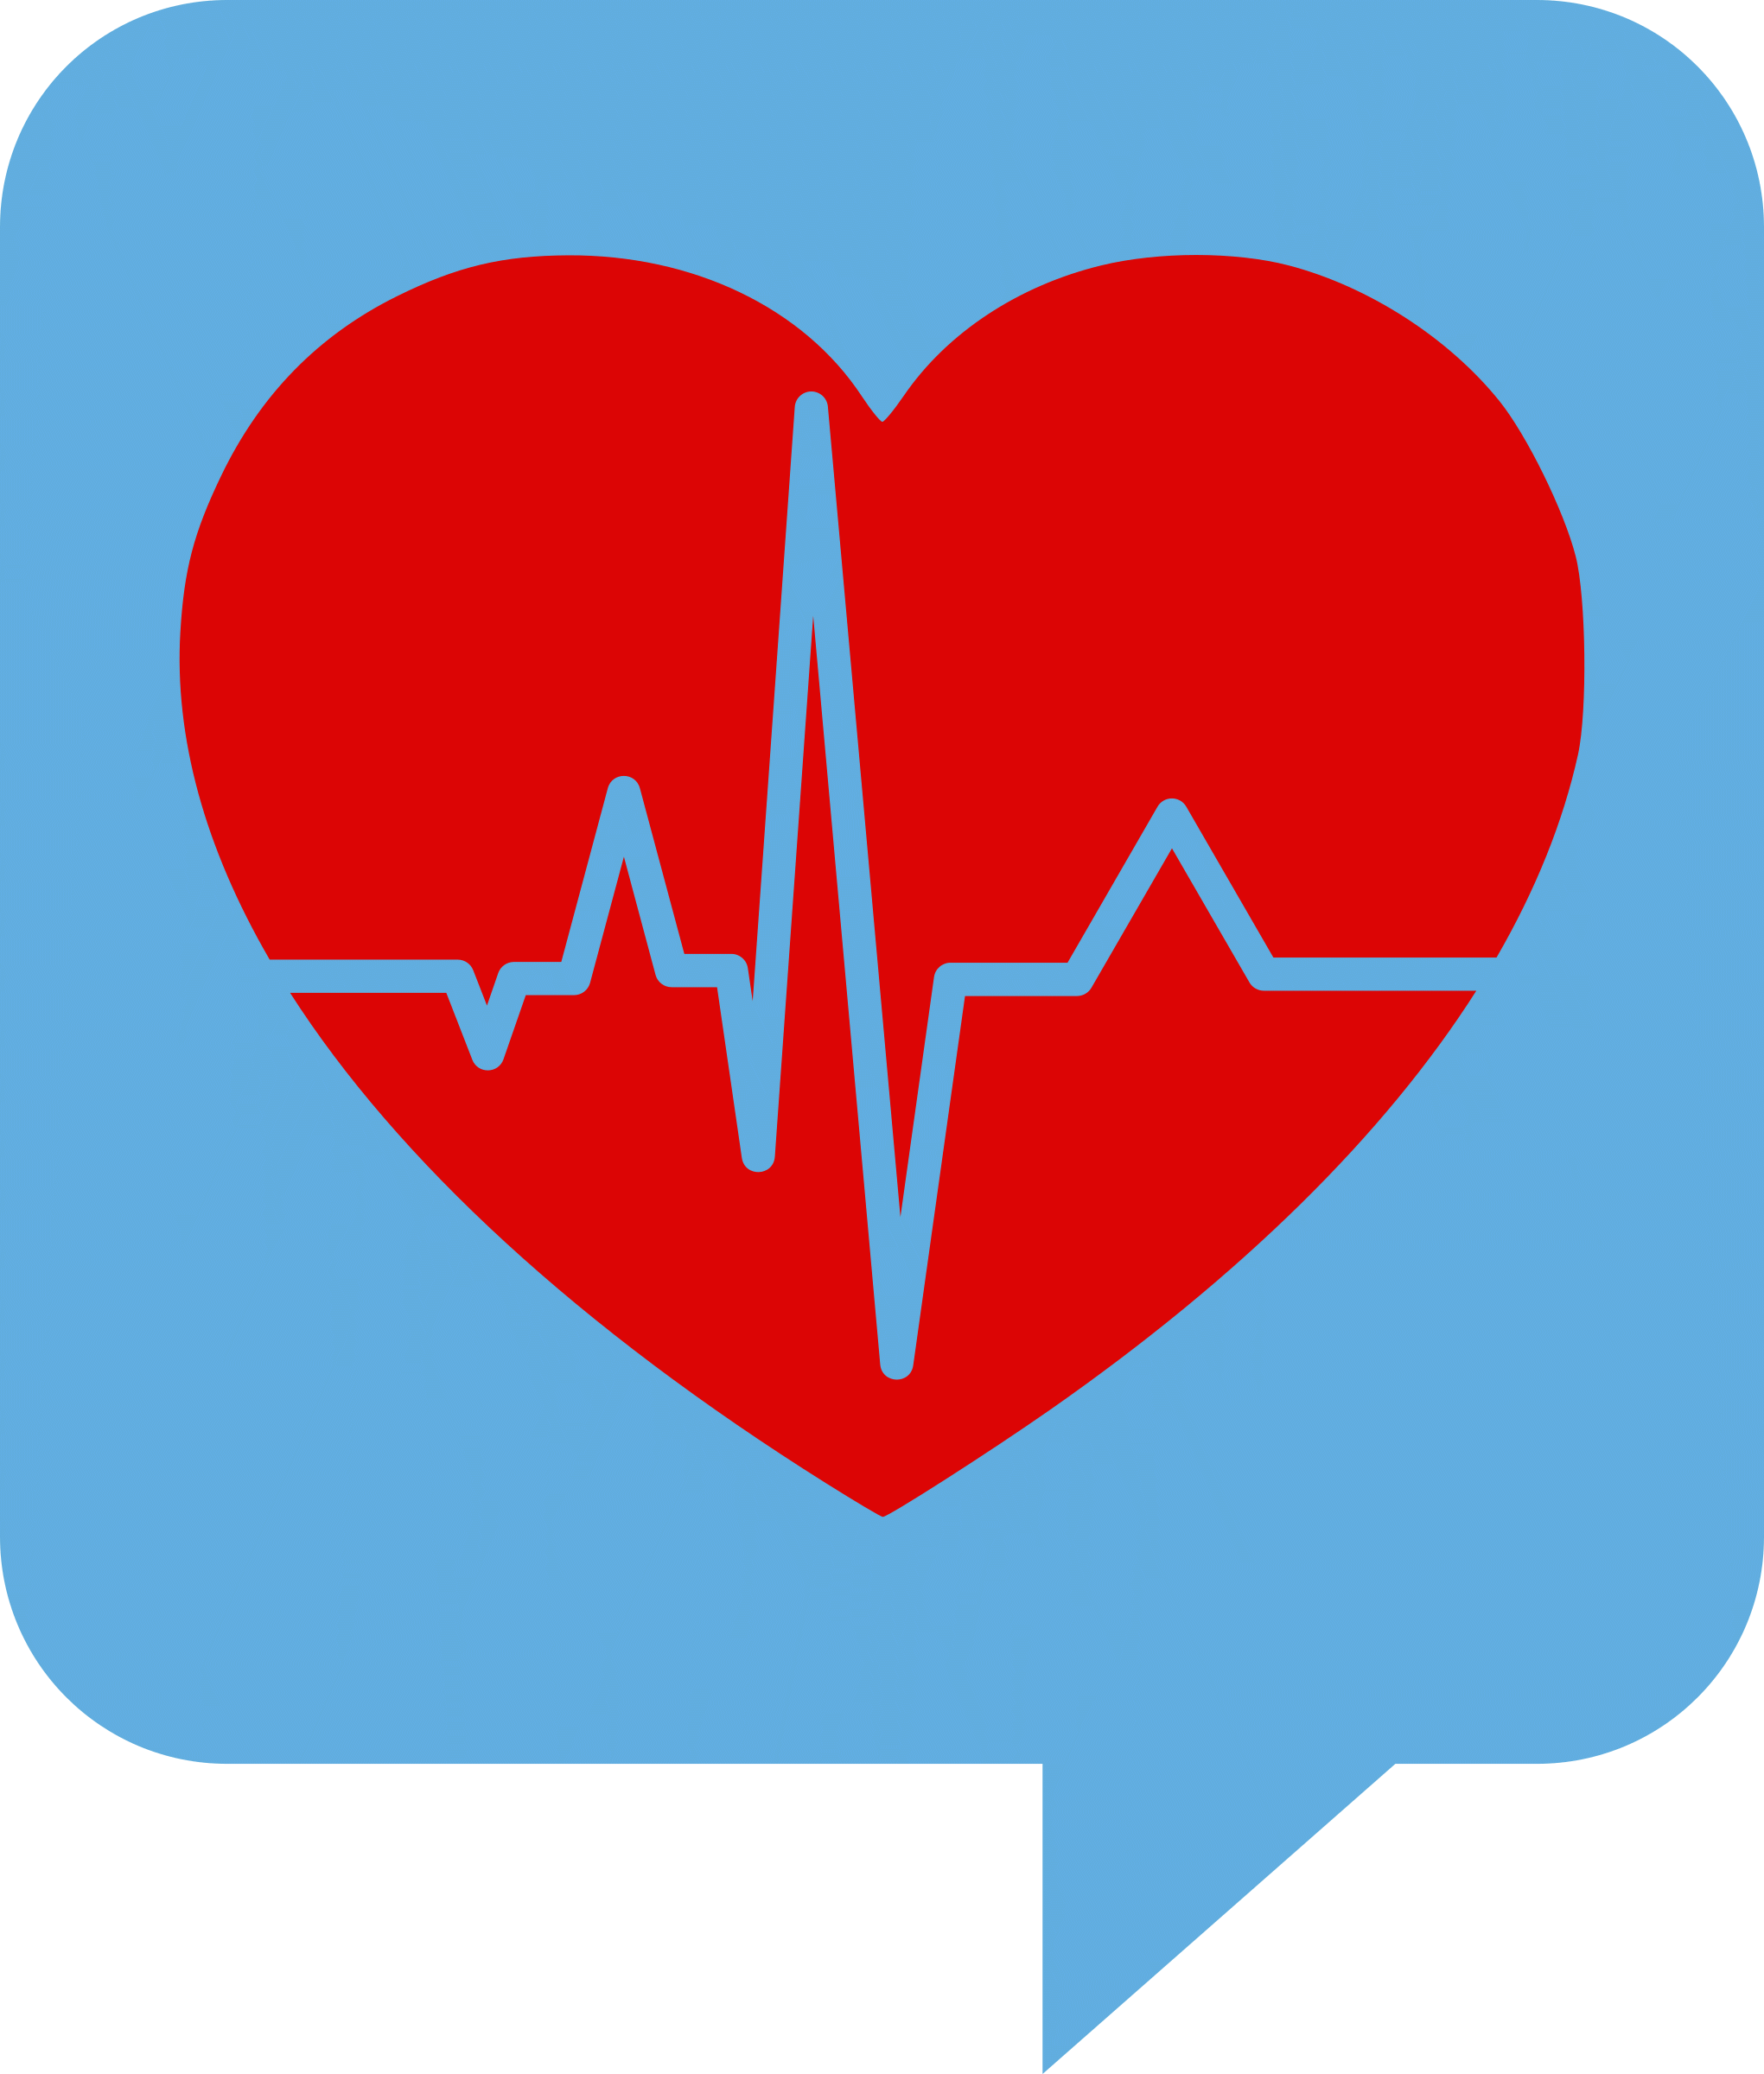 Heart sketch clipart banner free download Healthy Heart Clipart   Free download best Healthy Heart Clipart on ... banner free download